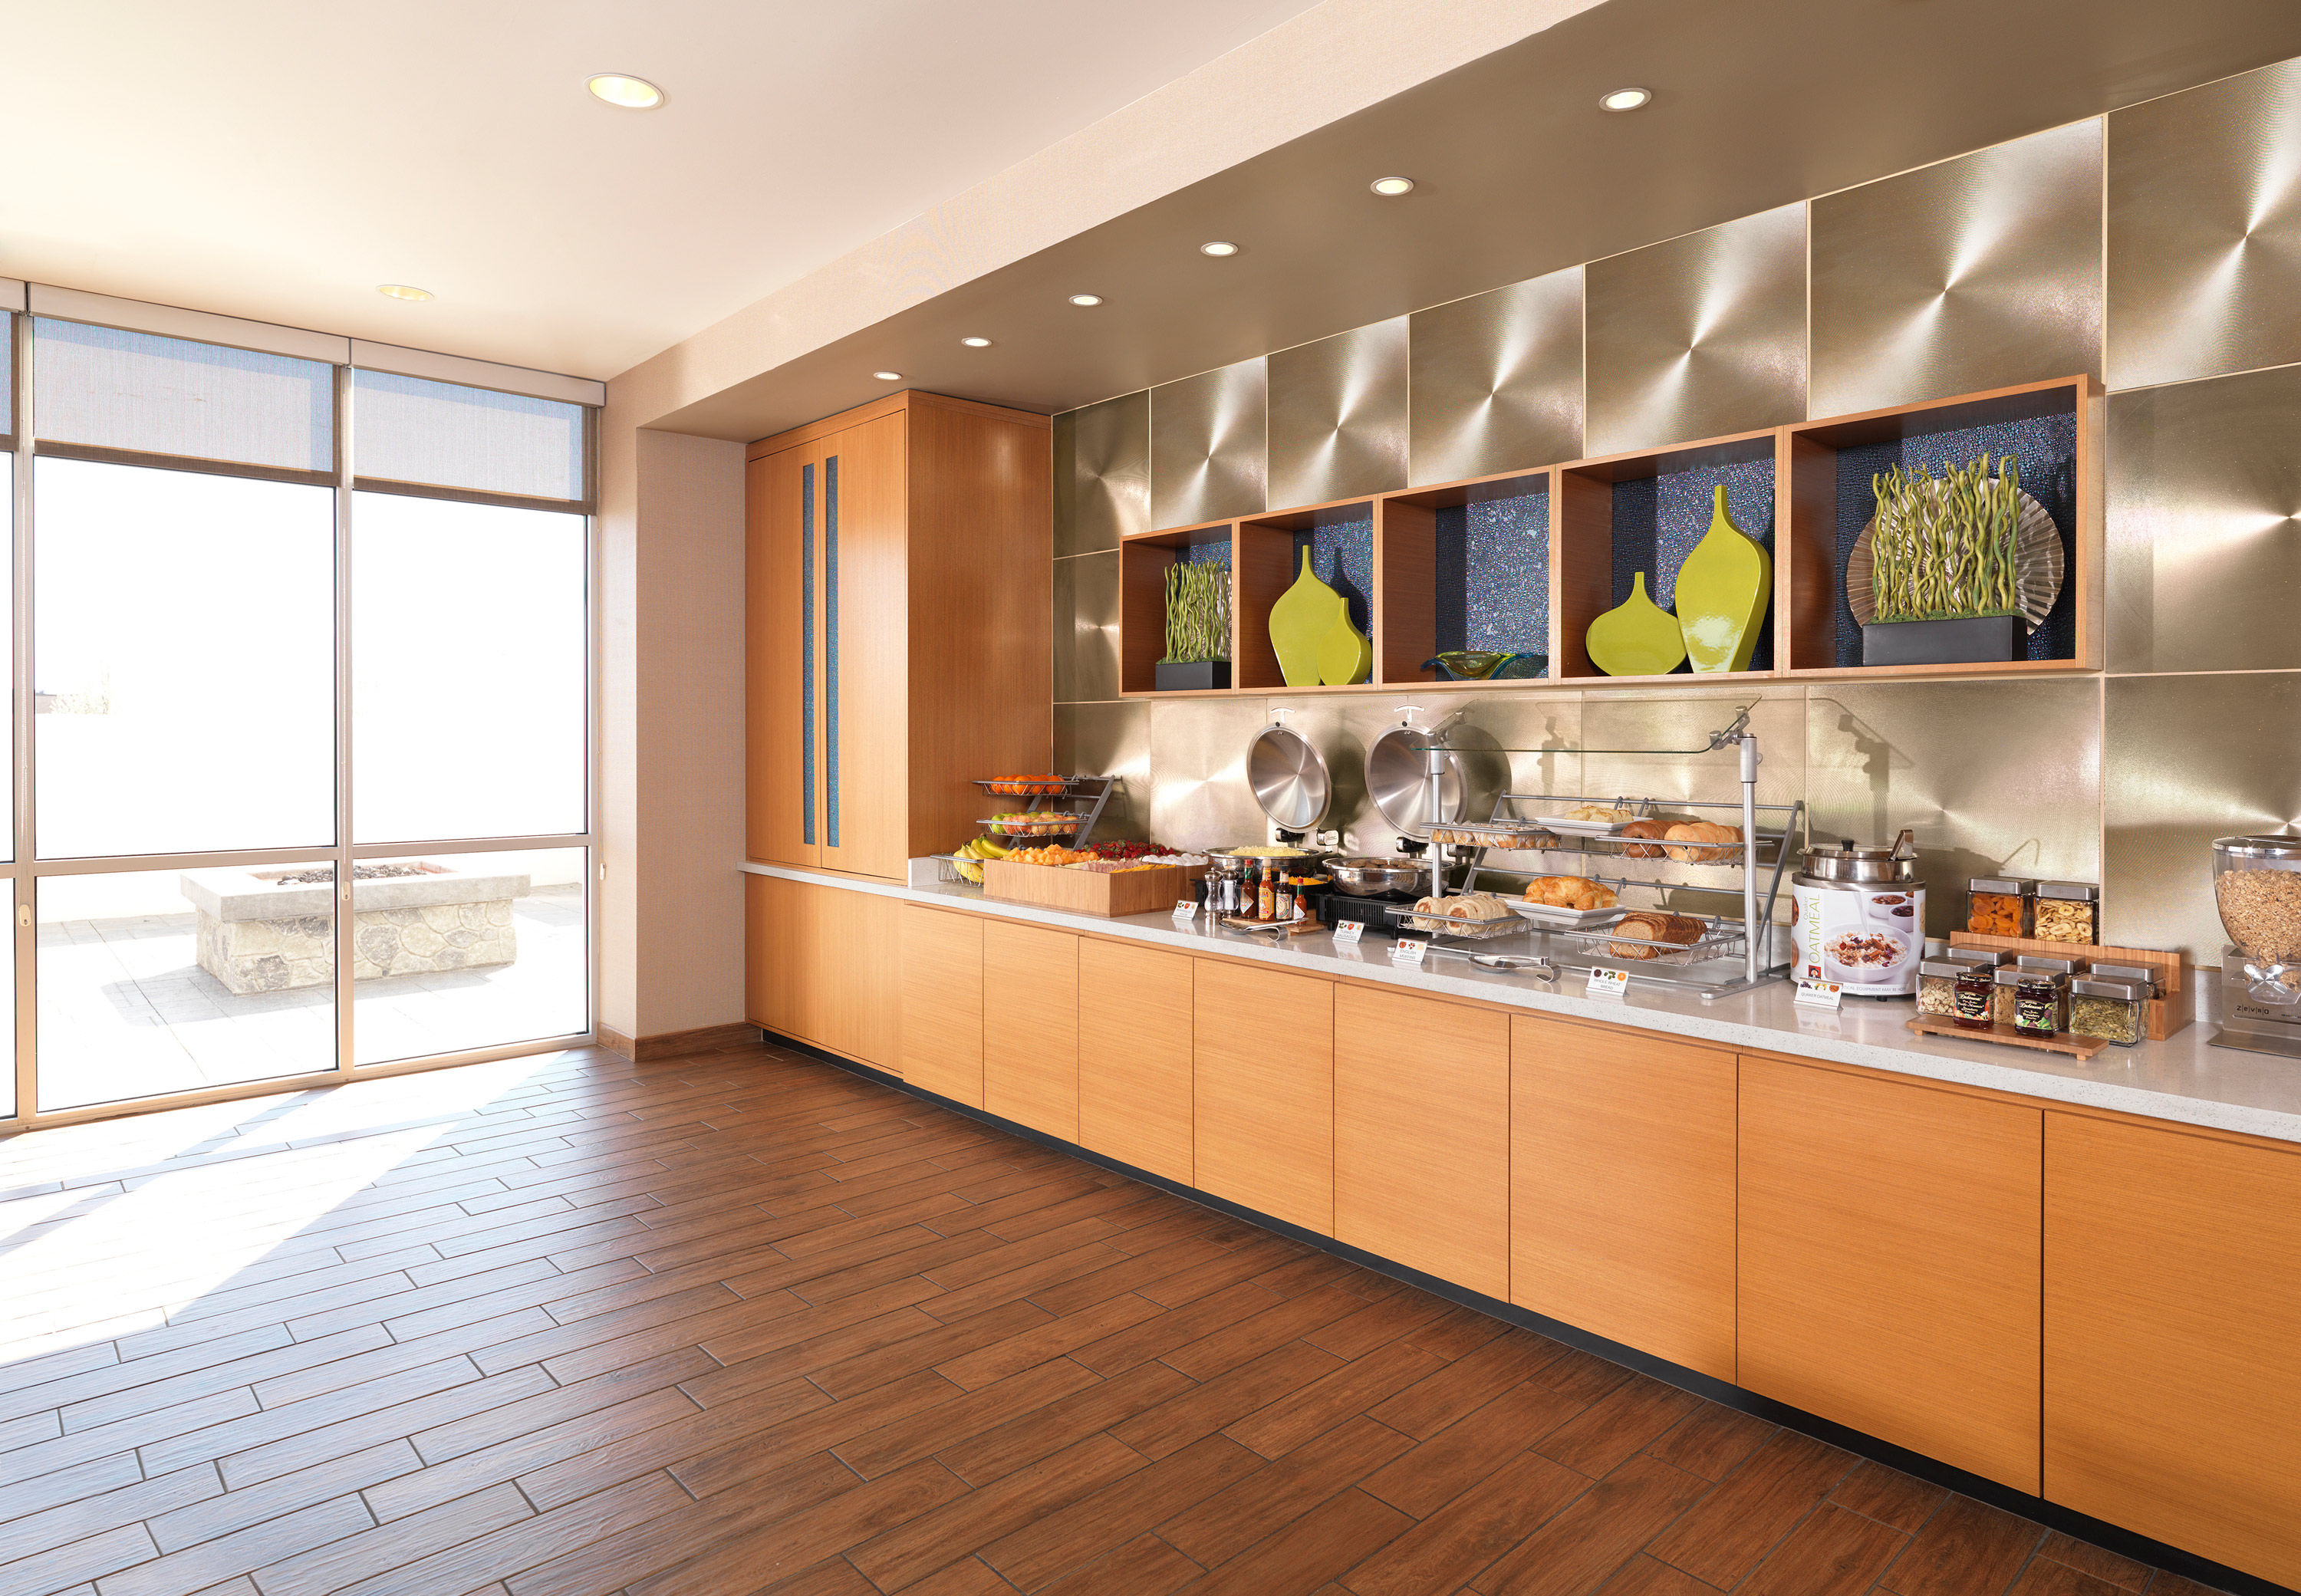 SpringHill Suites by Marriott Buffalo Airport image 17